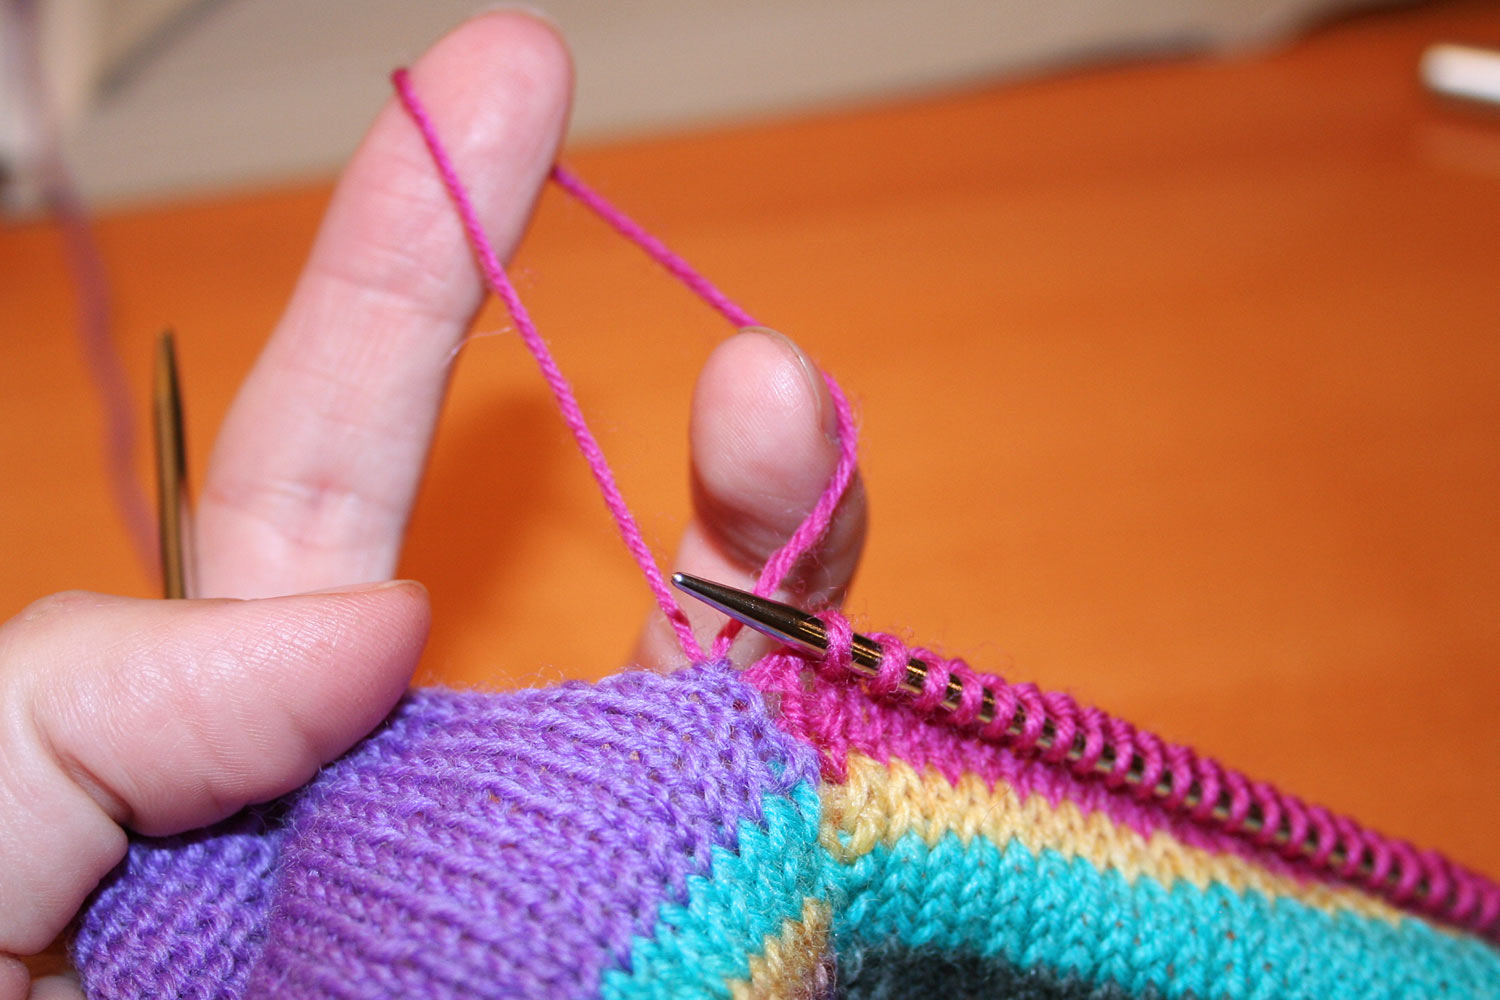 Fingers enlarging a stitch so it's becoming a large loop of yarn.